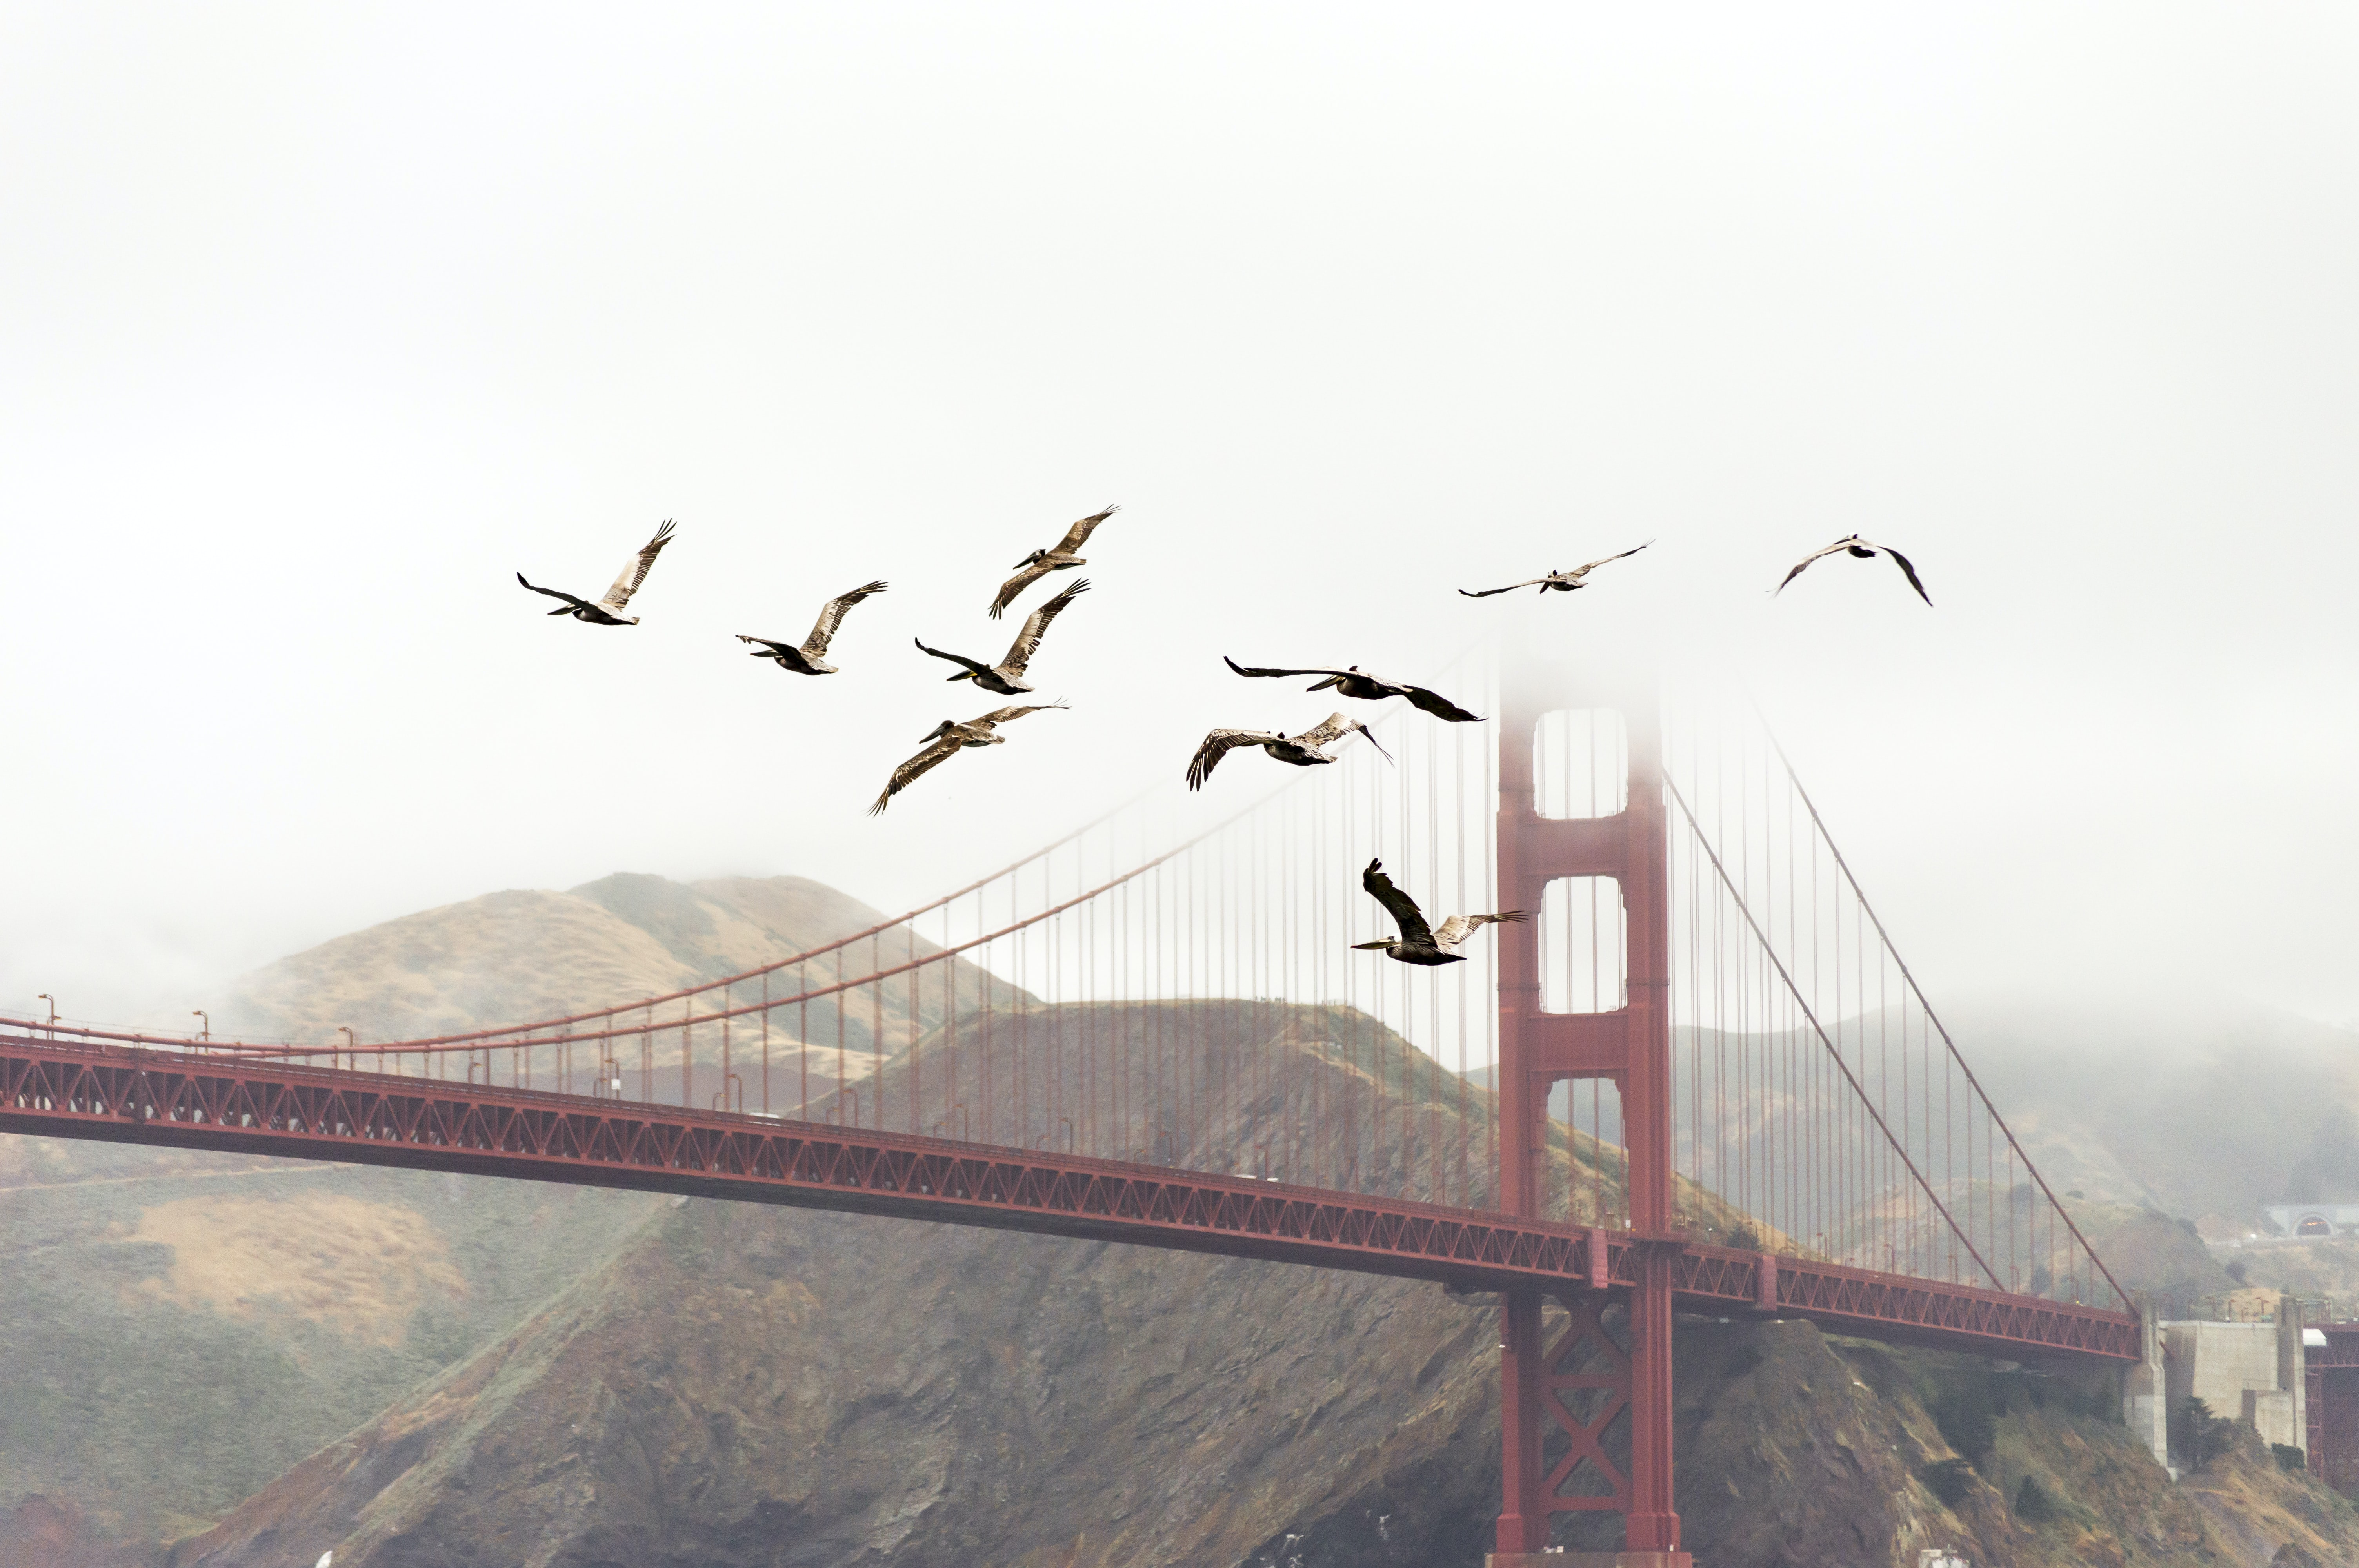 Birds fly away from Golden Gate Bridge on a foggy day